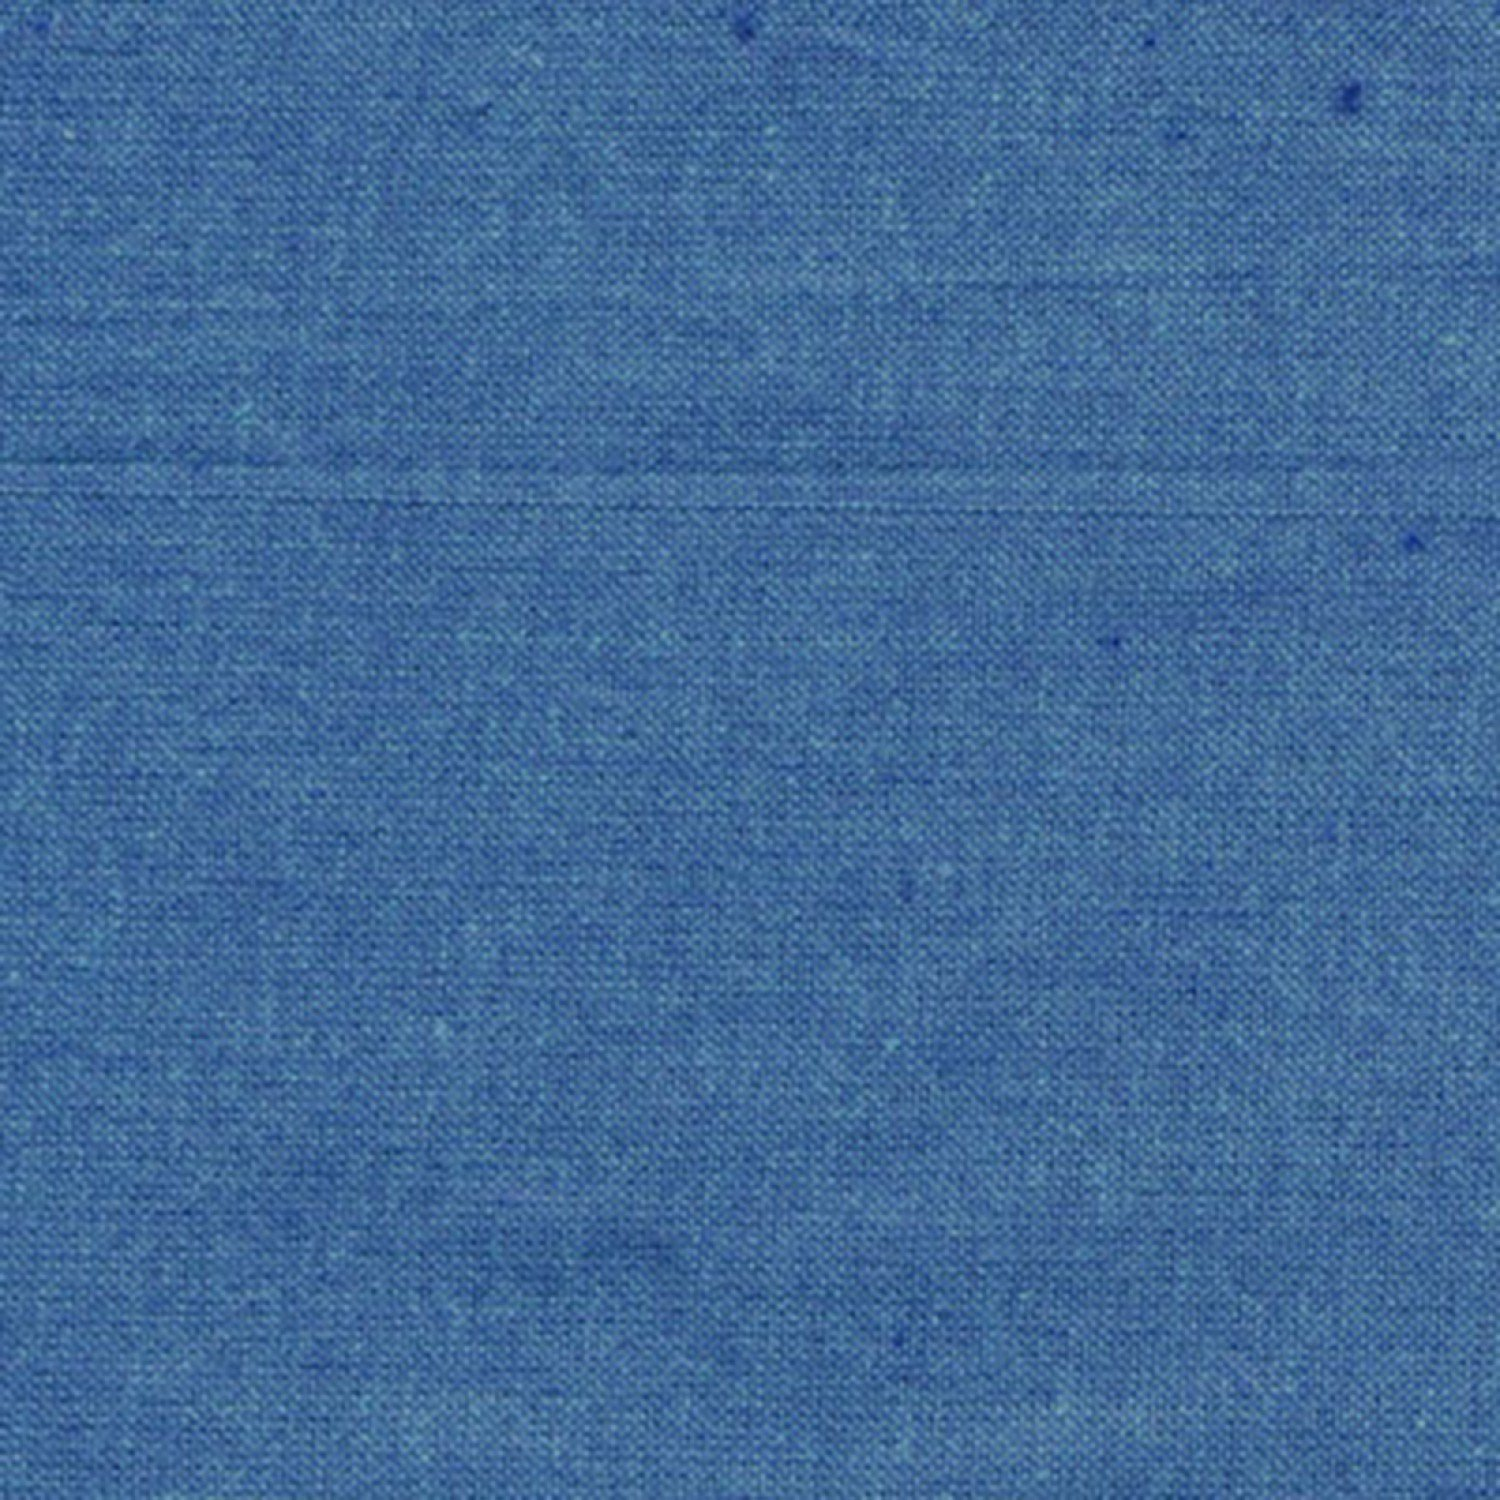 Peppered Cotton - Color 41 - Blue Jay